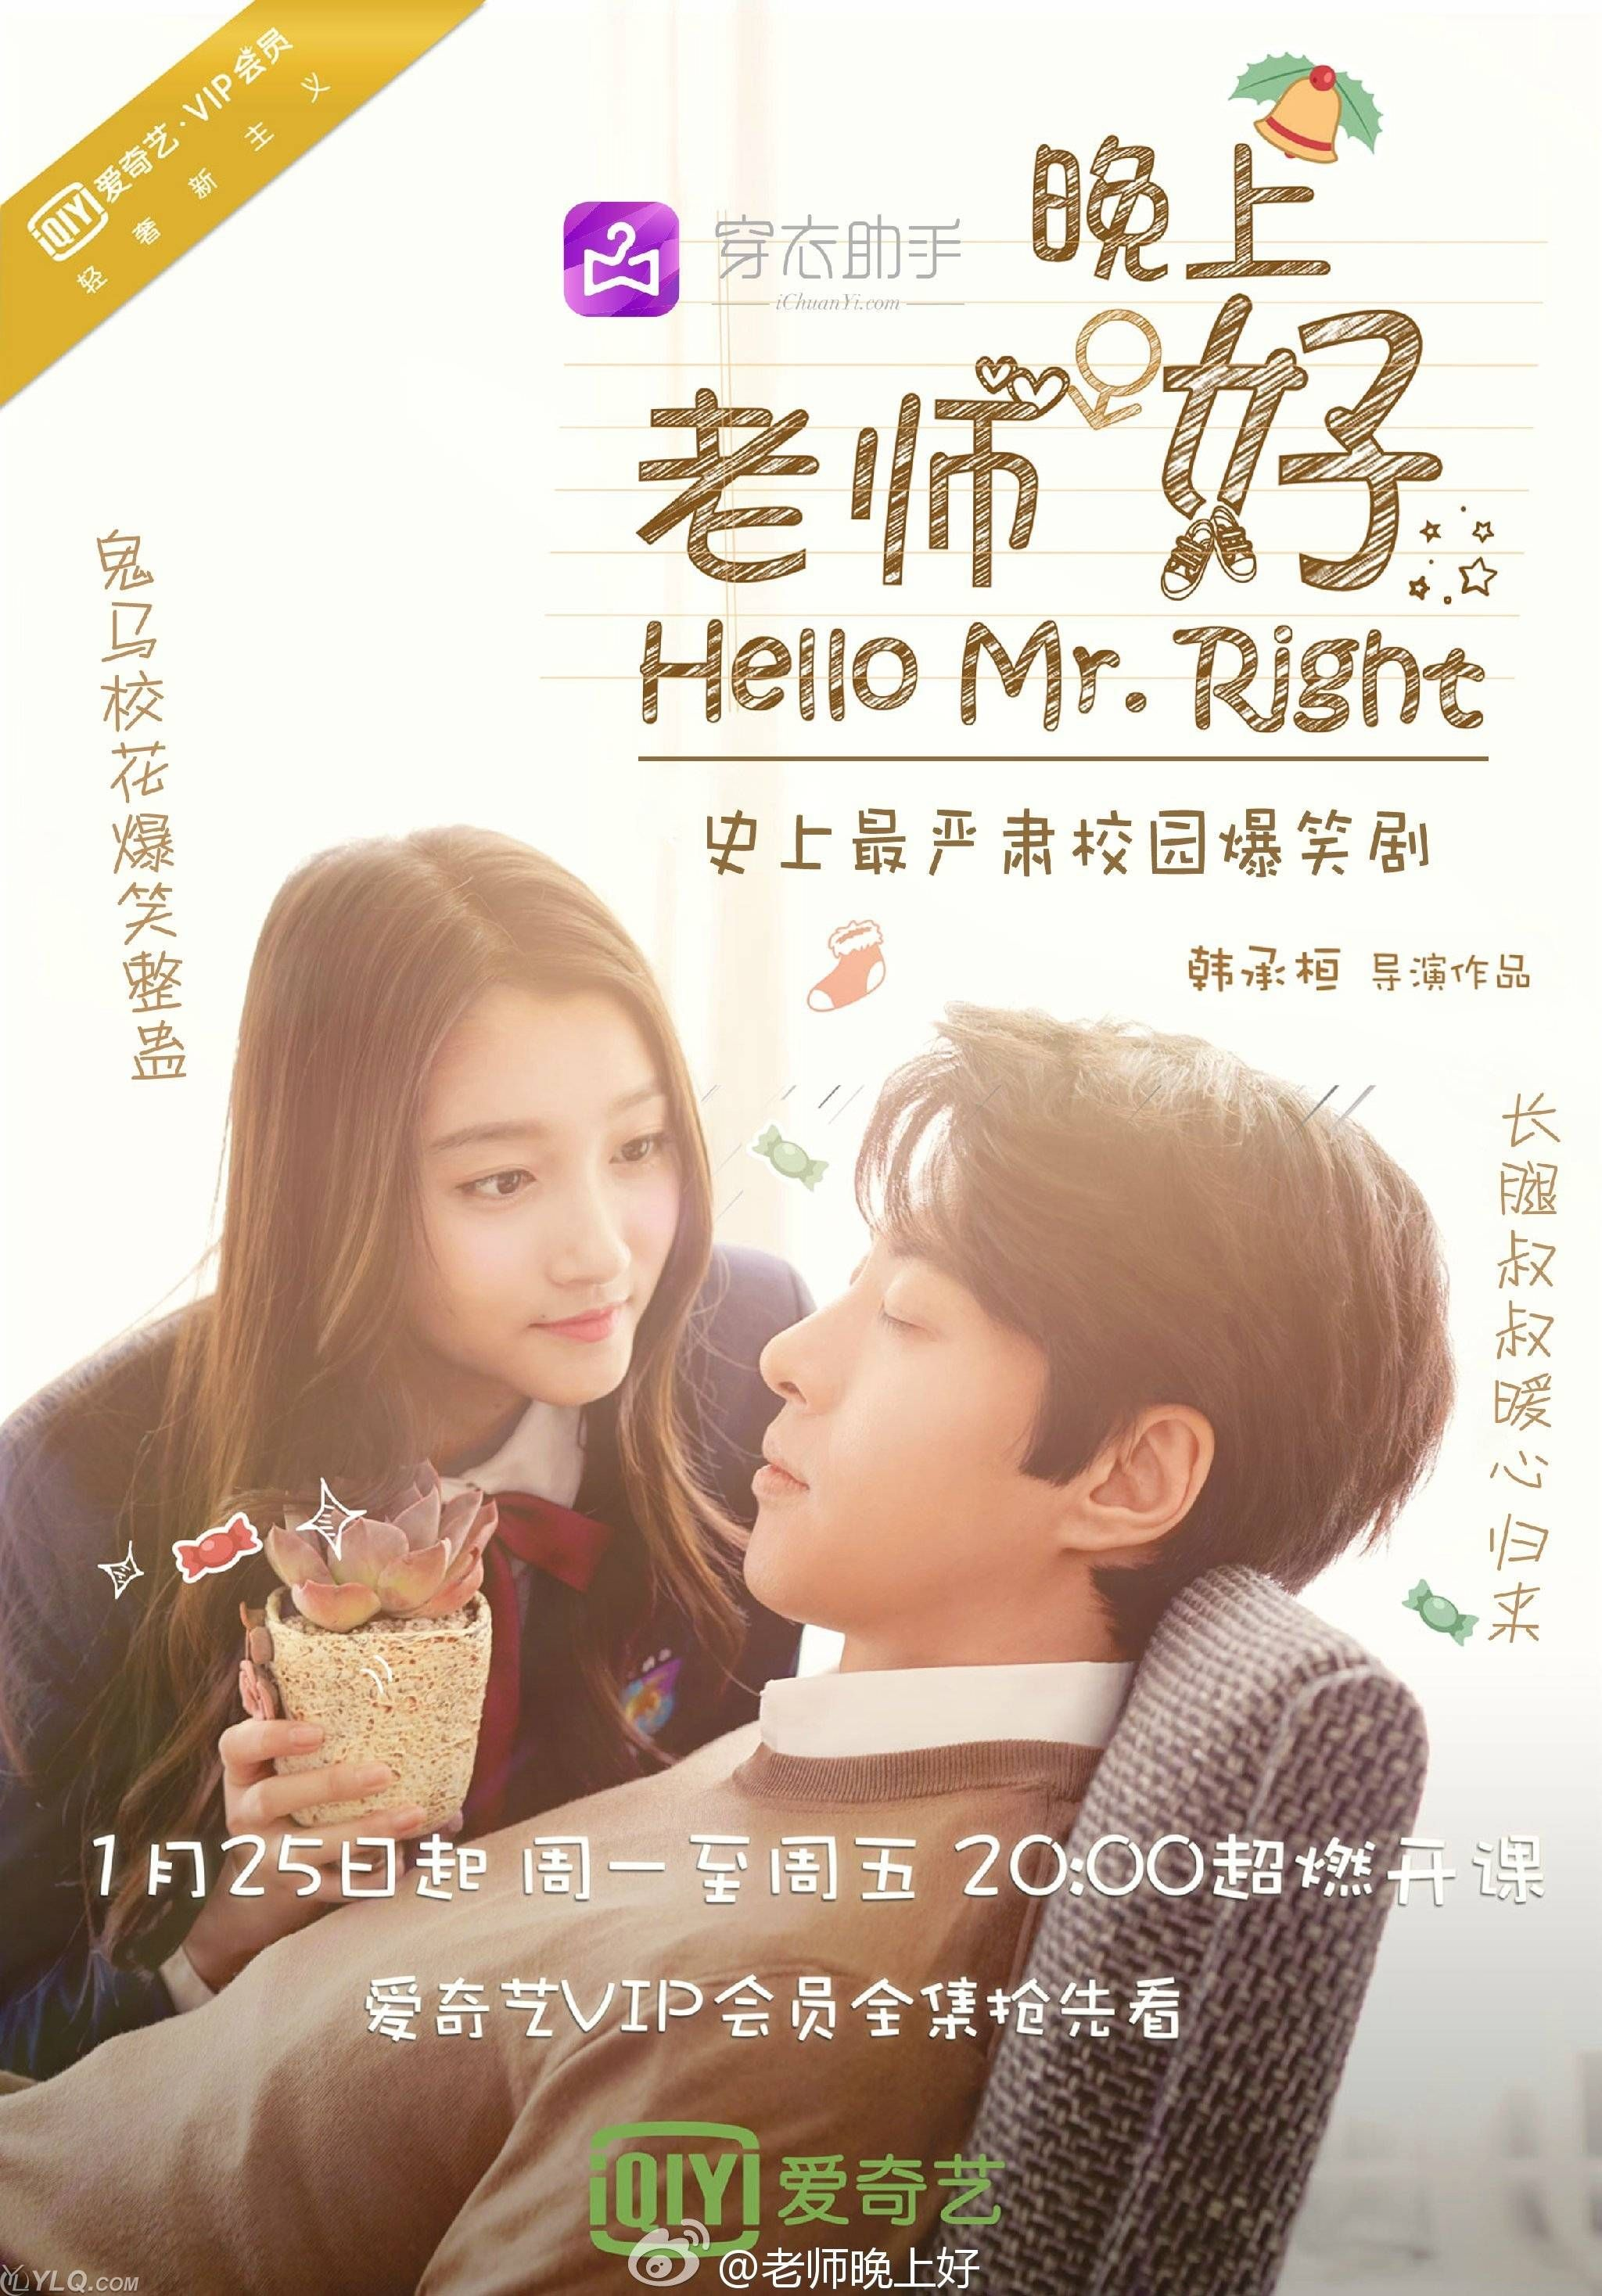 Watch Hello Mr Right Chinese Drama 2016 Eng Sub is a Lin Xia